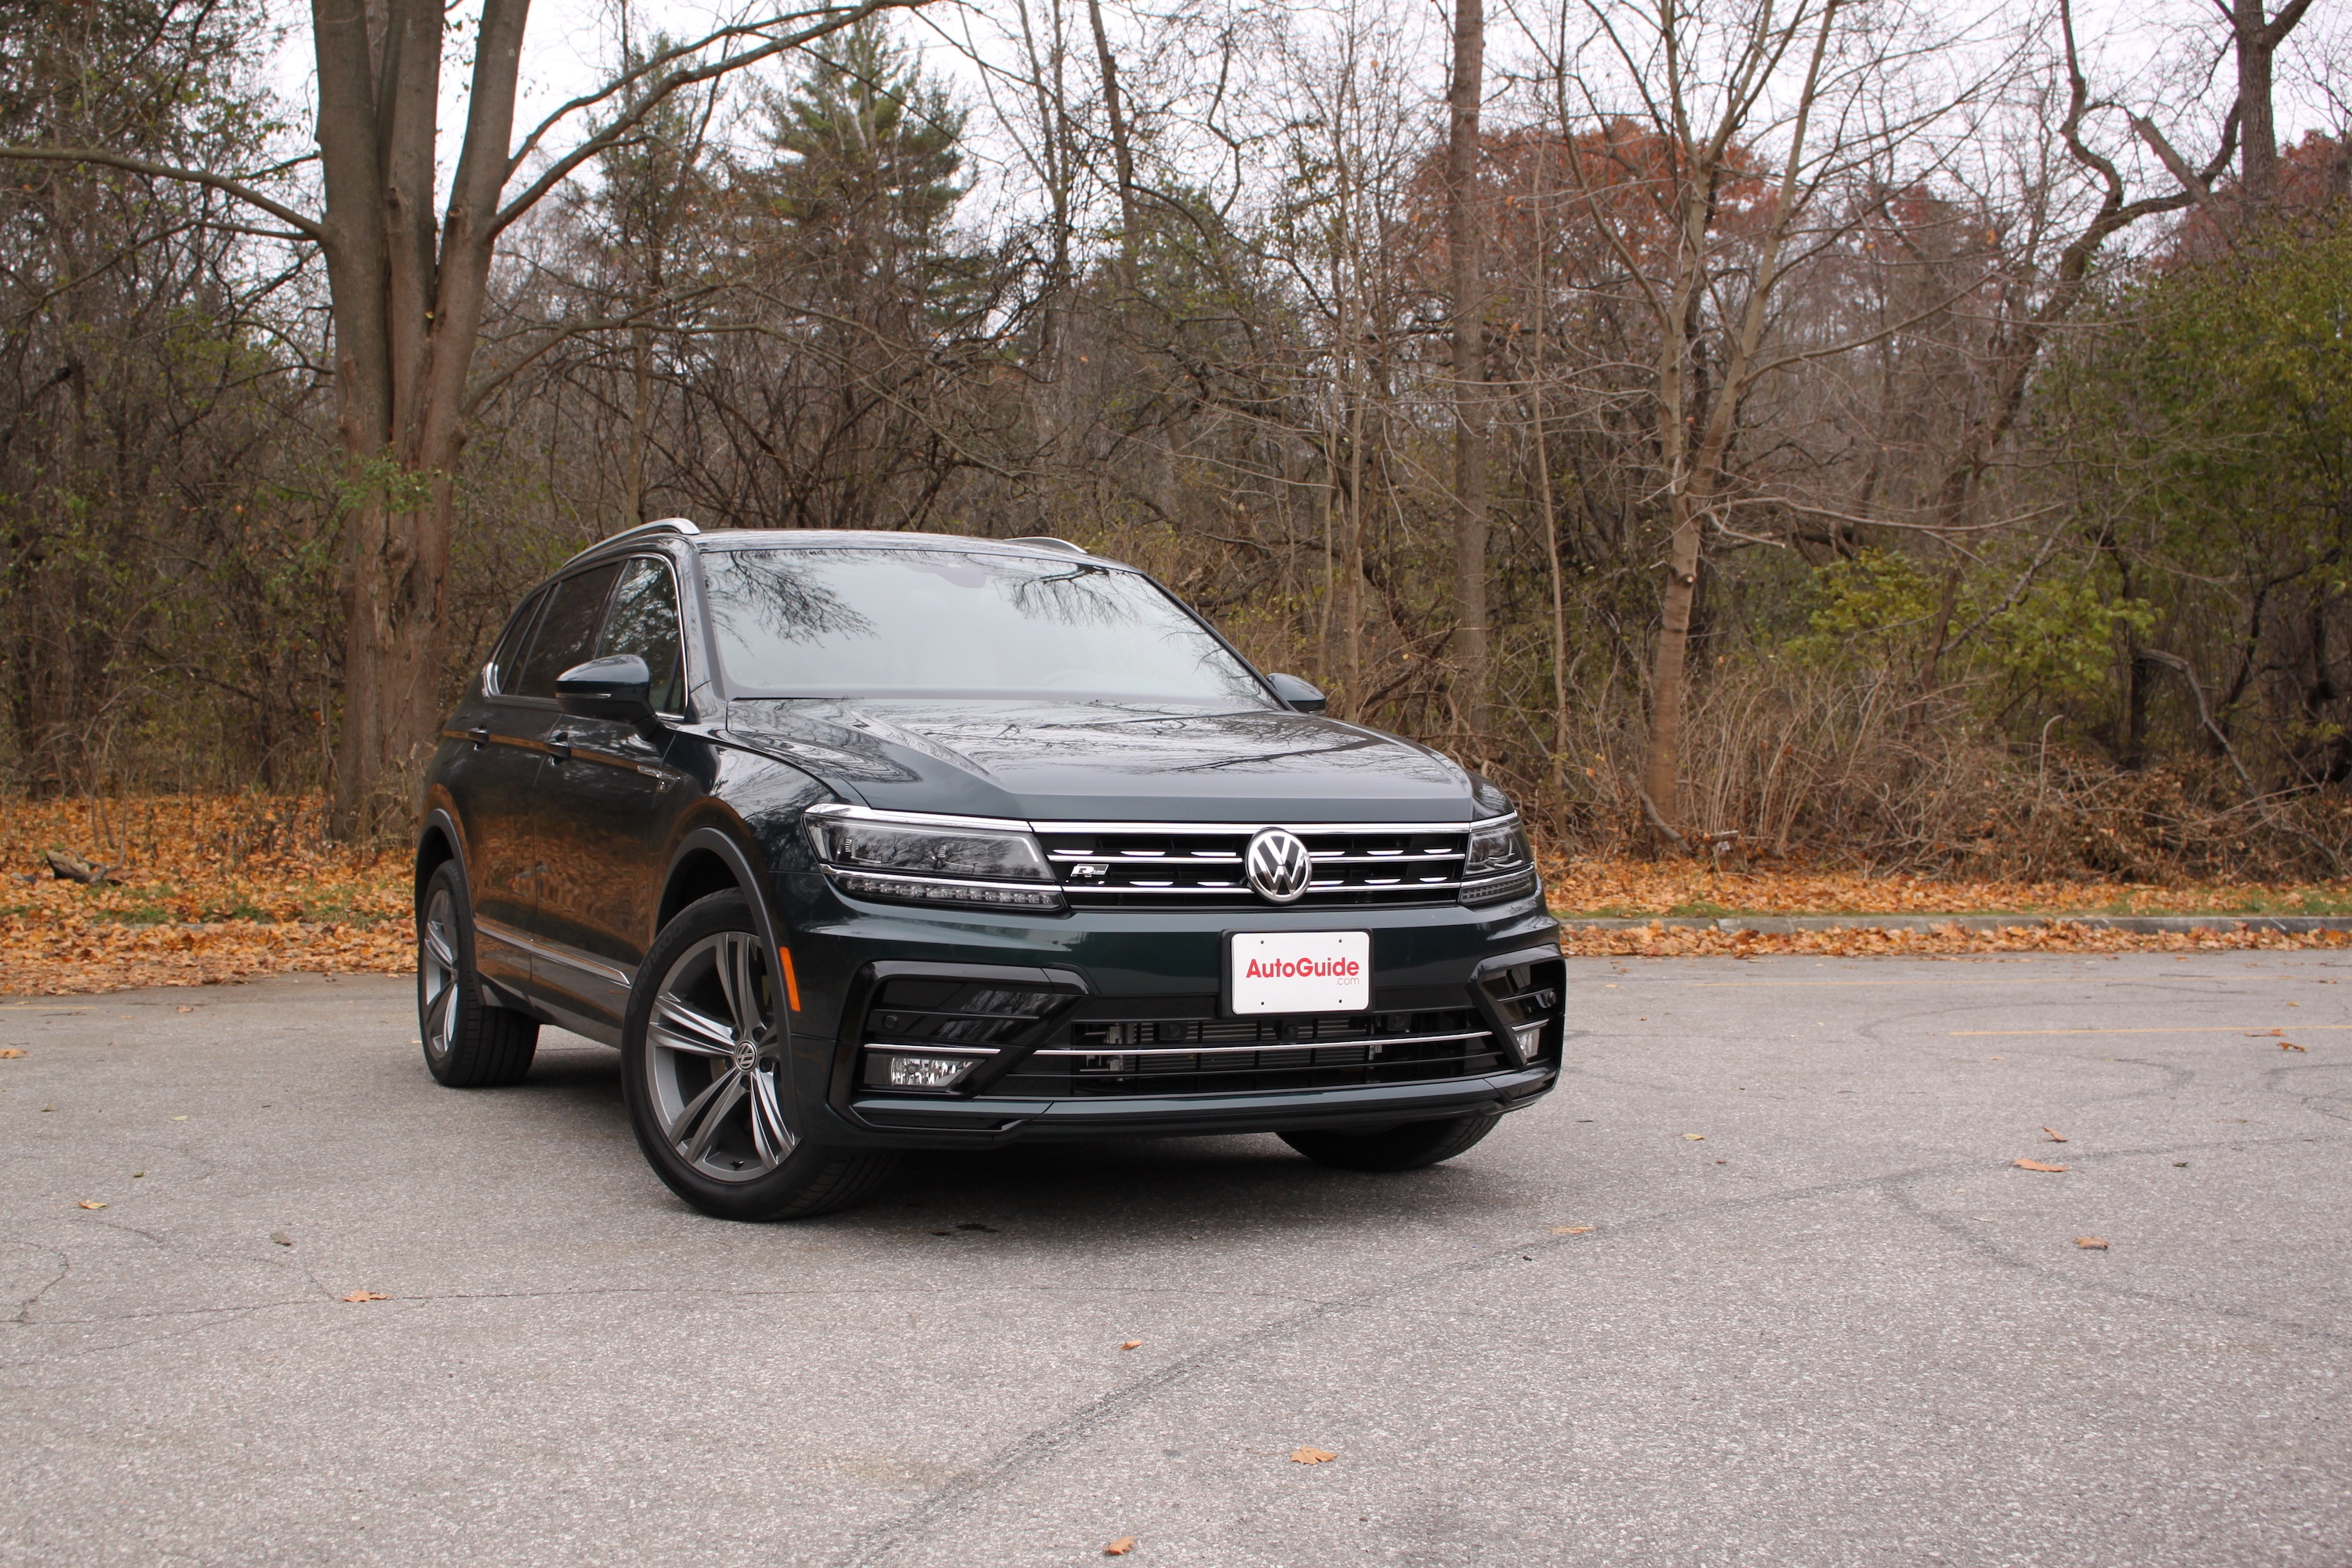 2019 Subaru Forester Vs Volkswagen Tiguan Comparison